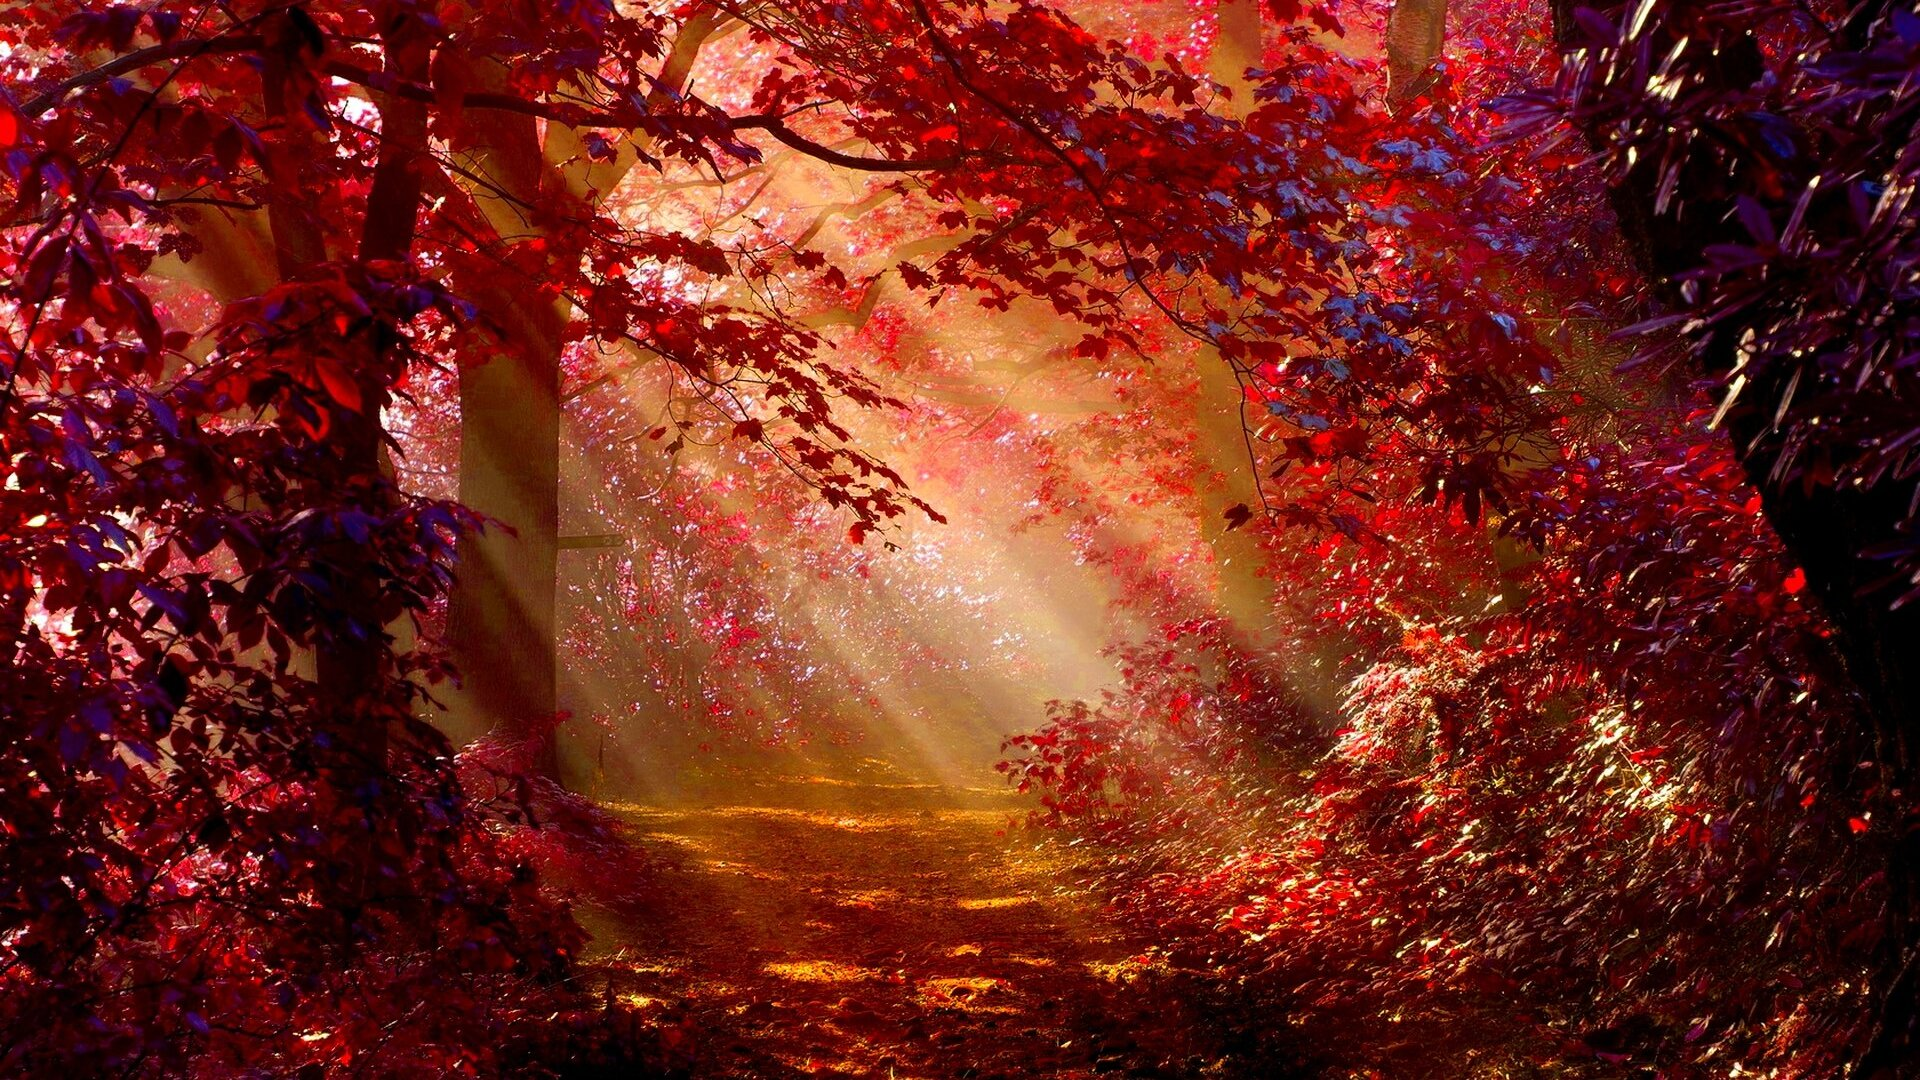 Forest 4k Quality Iphone Wallpaper: 1920x1080 Sunlight In Autumn Forest Laptop Full HD 1080P